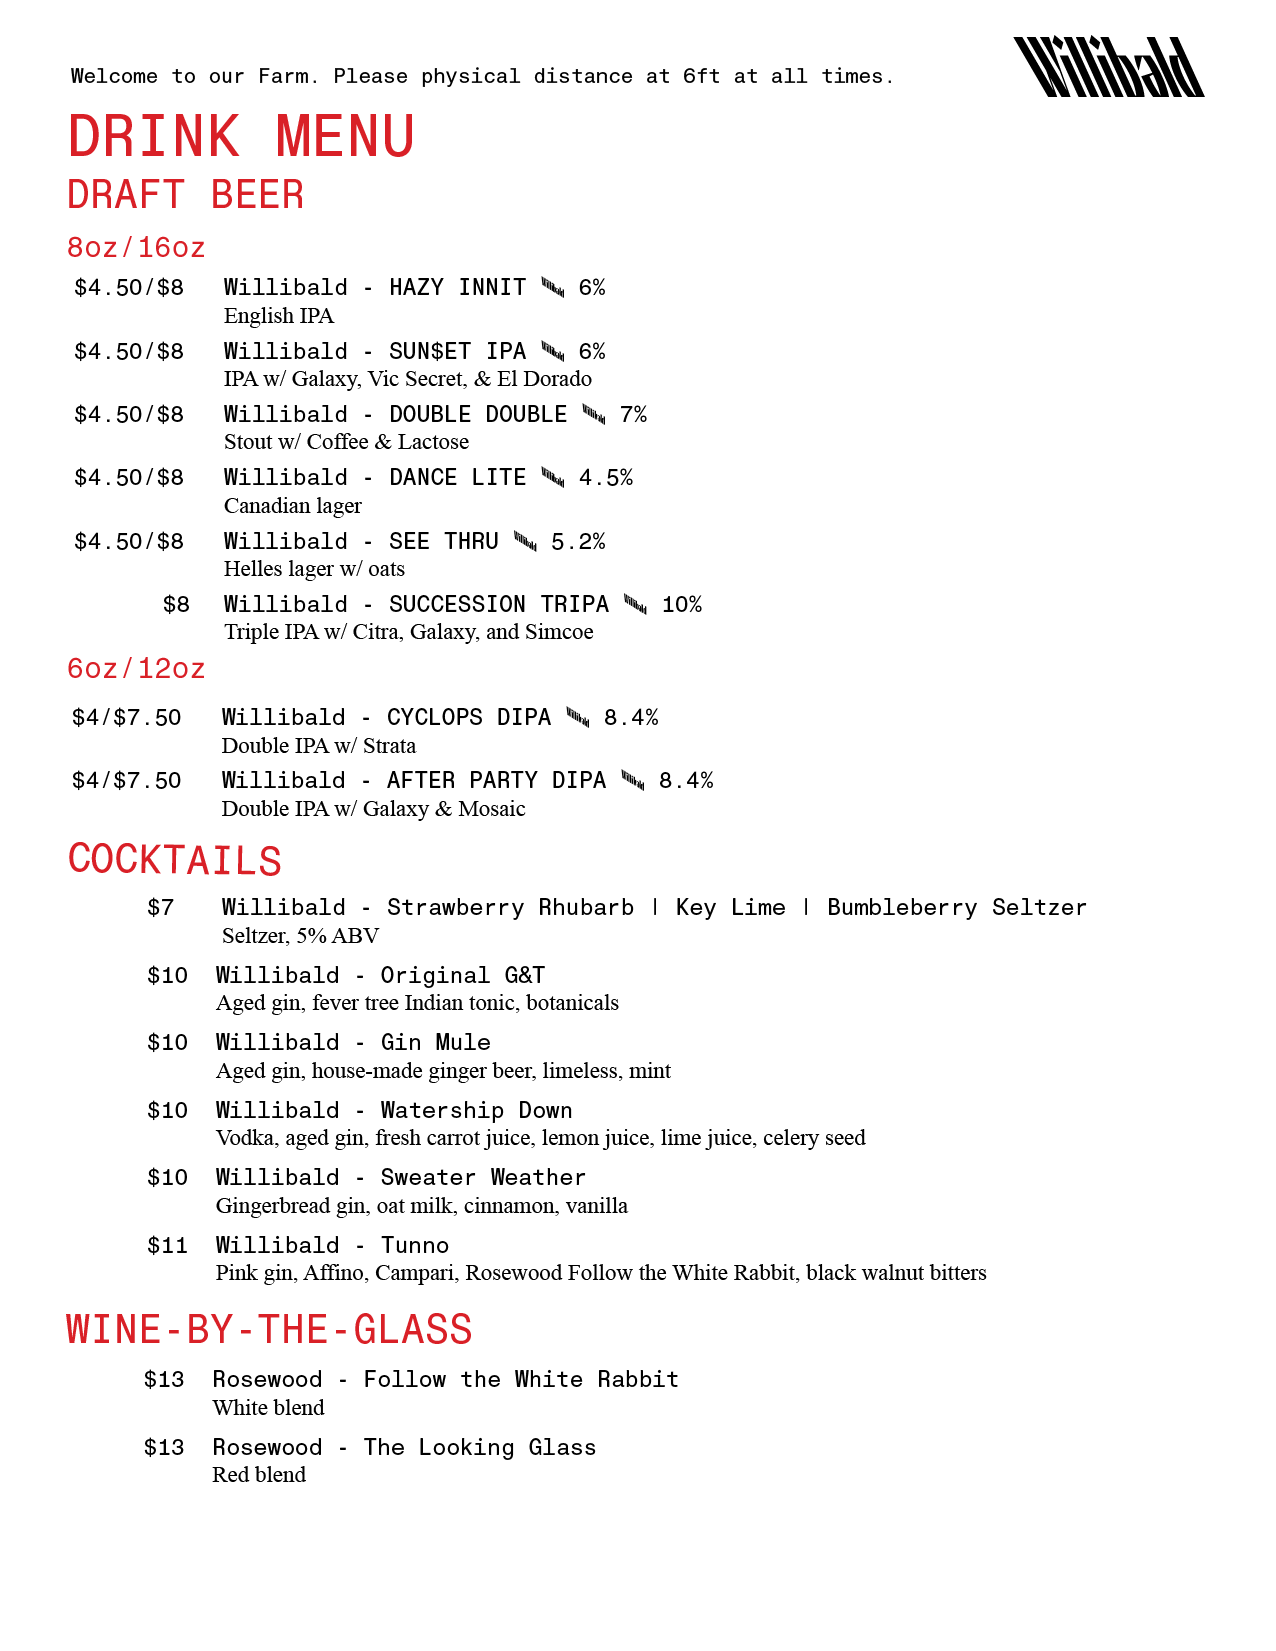 Willibald Drink Menu